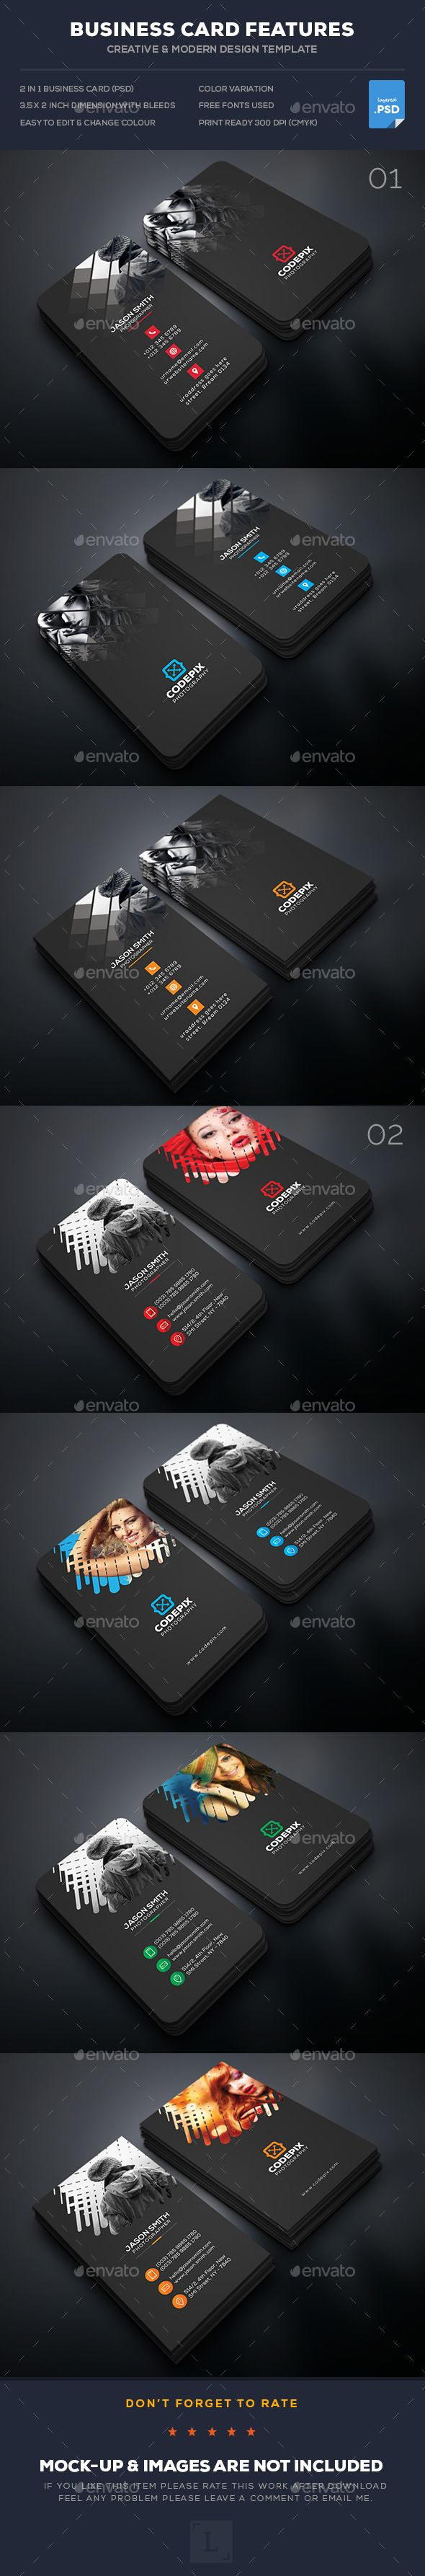 Photography Business Card Template PSD Bundle. Download here: https://graphicriver.net/item/photography-business-card-bundle/17402540?ref=ksioks